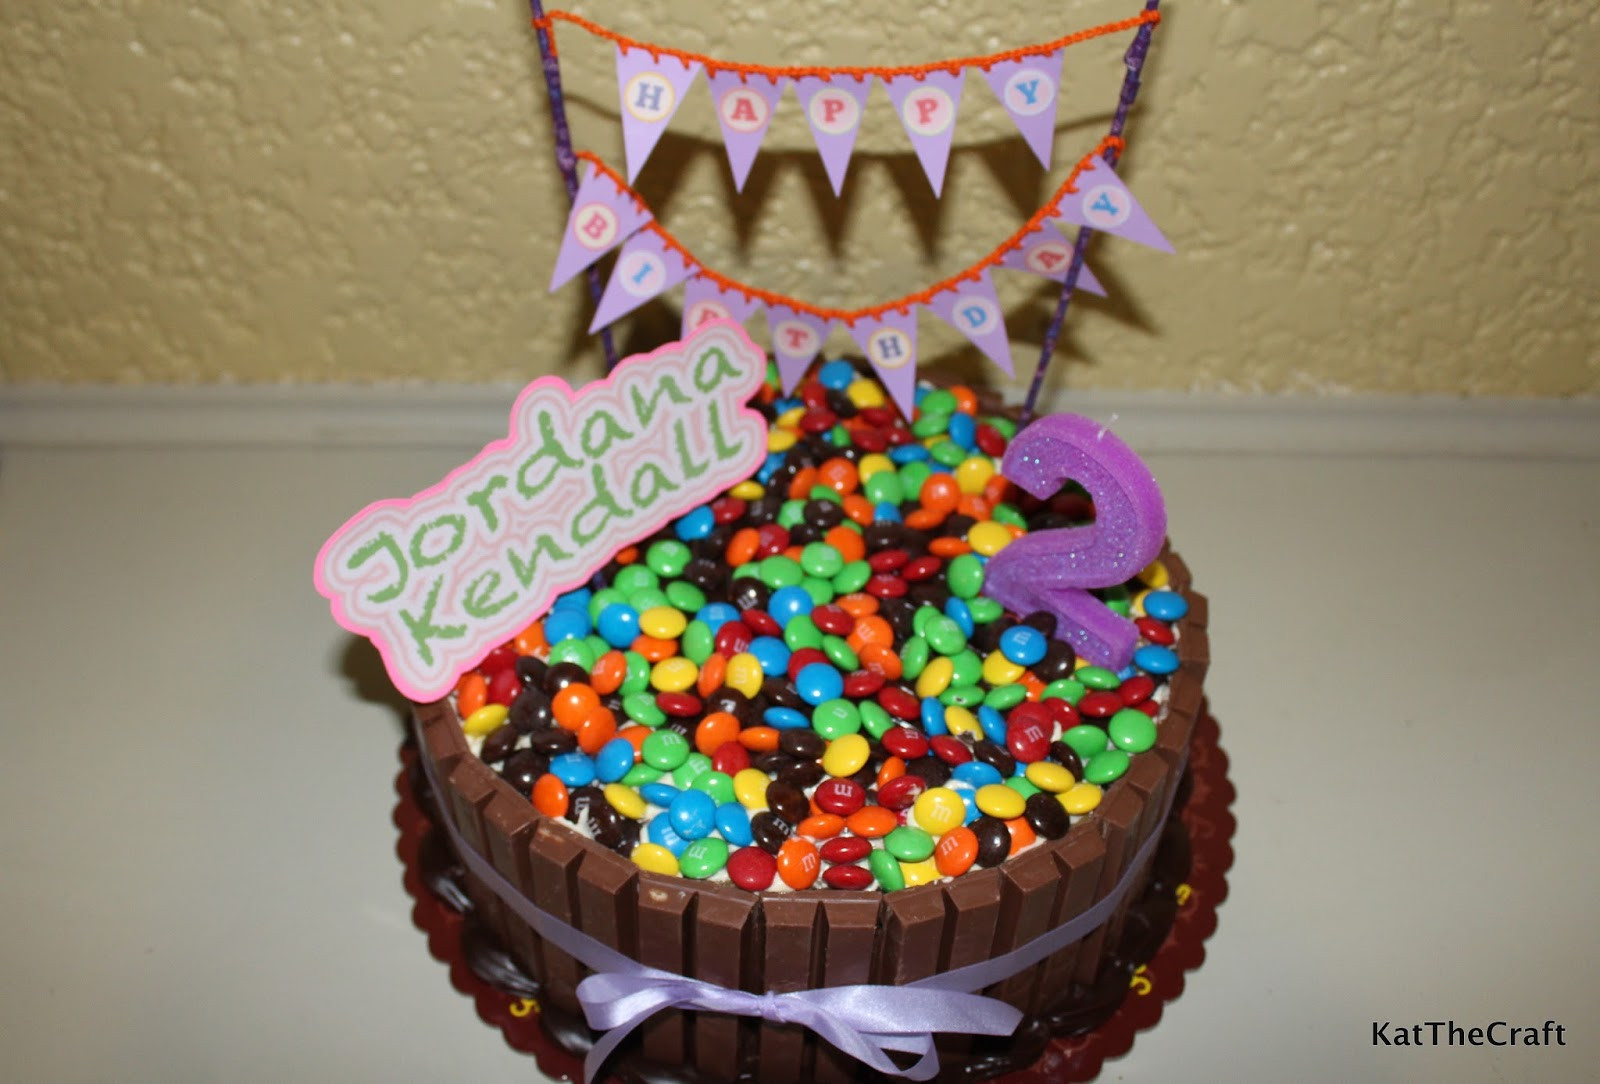 Cake Decorating Ideas For Birthday  So Many Things to Do So Little Time DIY Birthday Cake